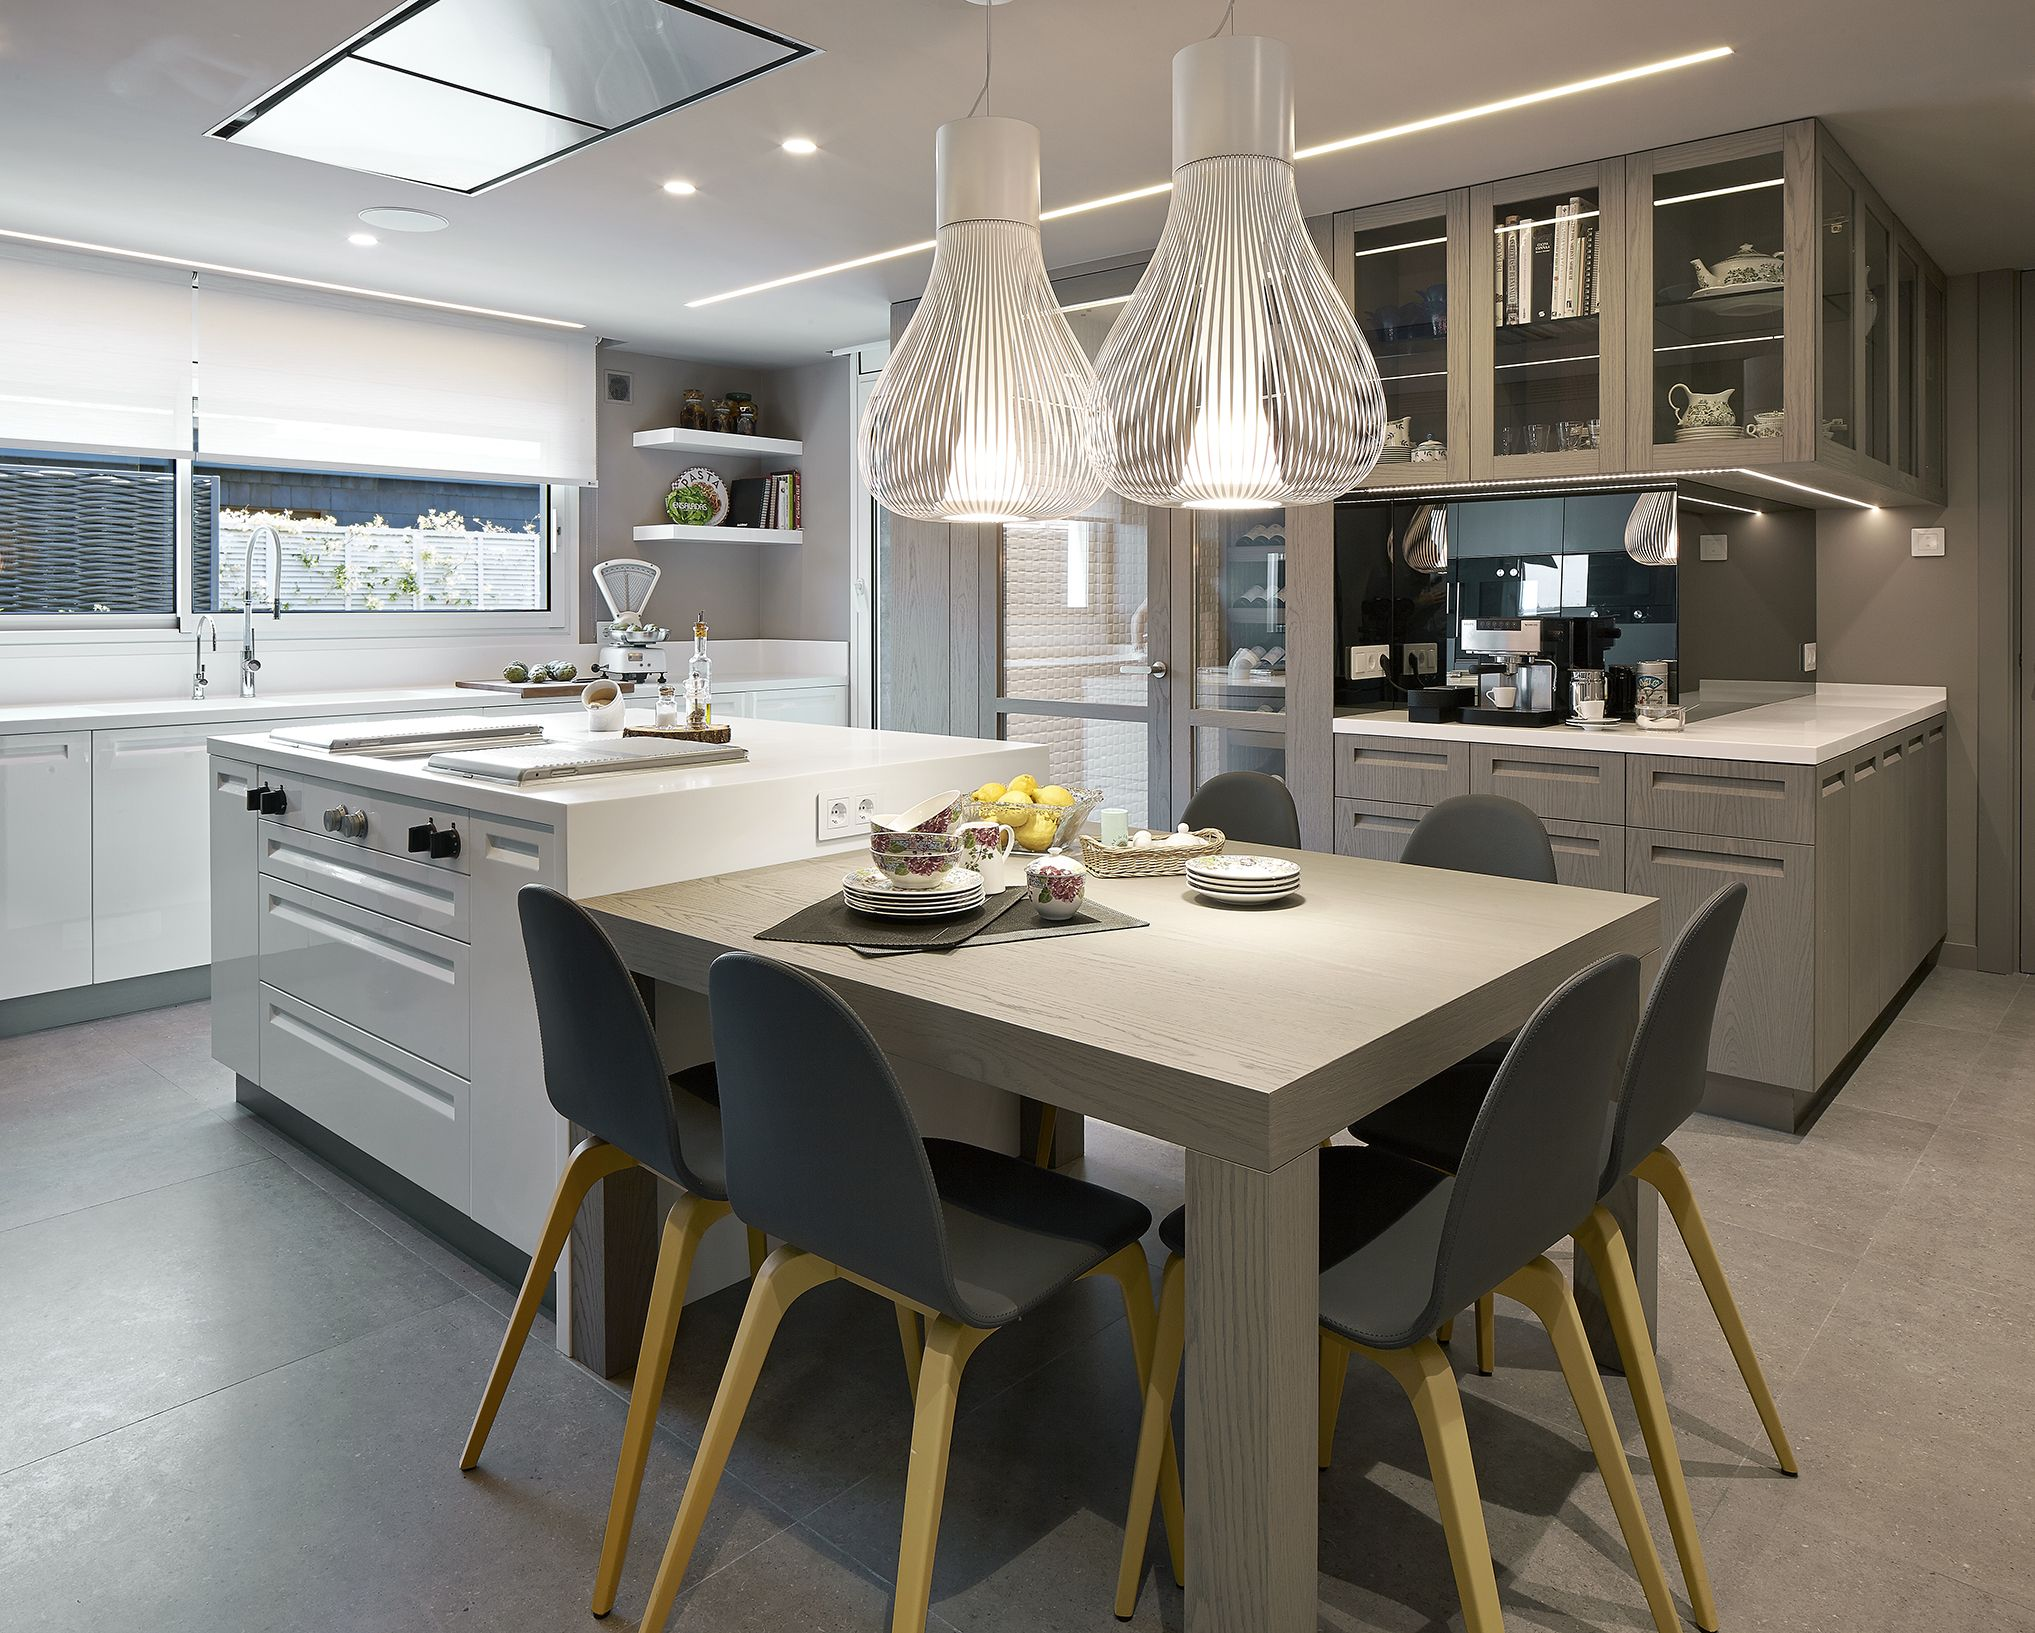 Stationary Kitchen Island With Seating Molins Interiors Arquitectura Interior Interiorismo